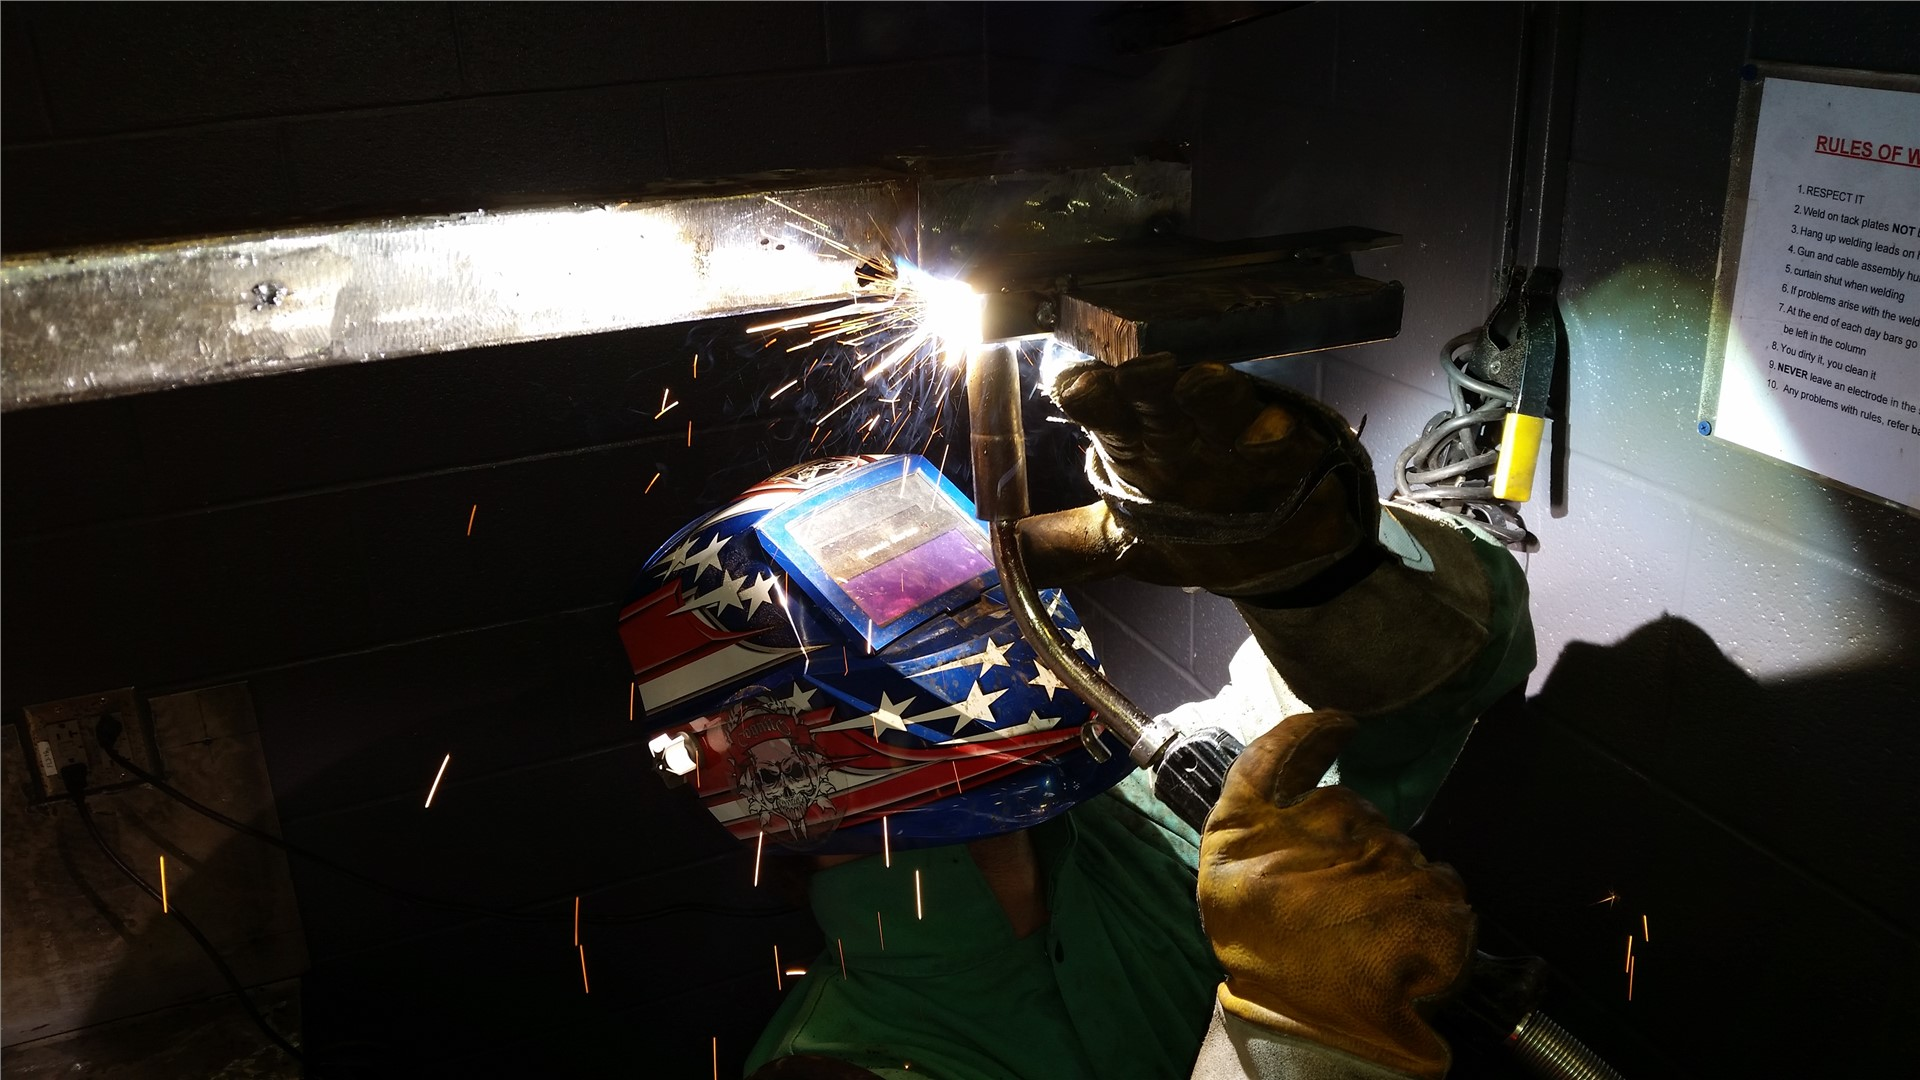 Welder with stars and stripes welding helmet on